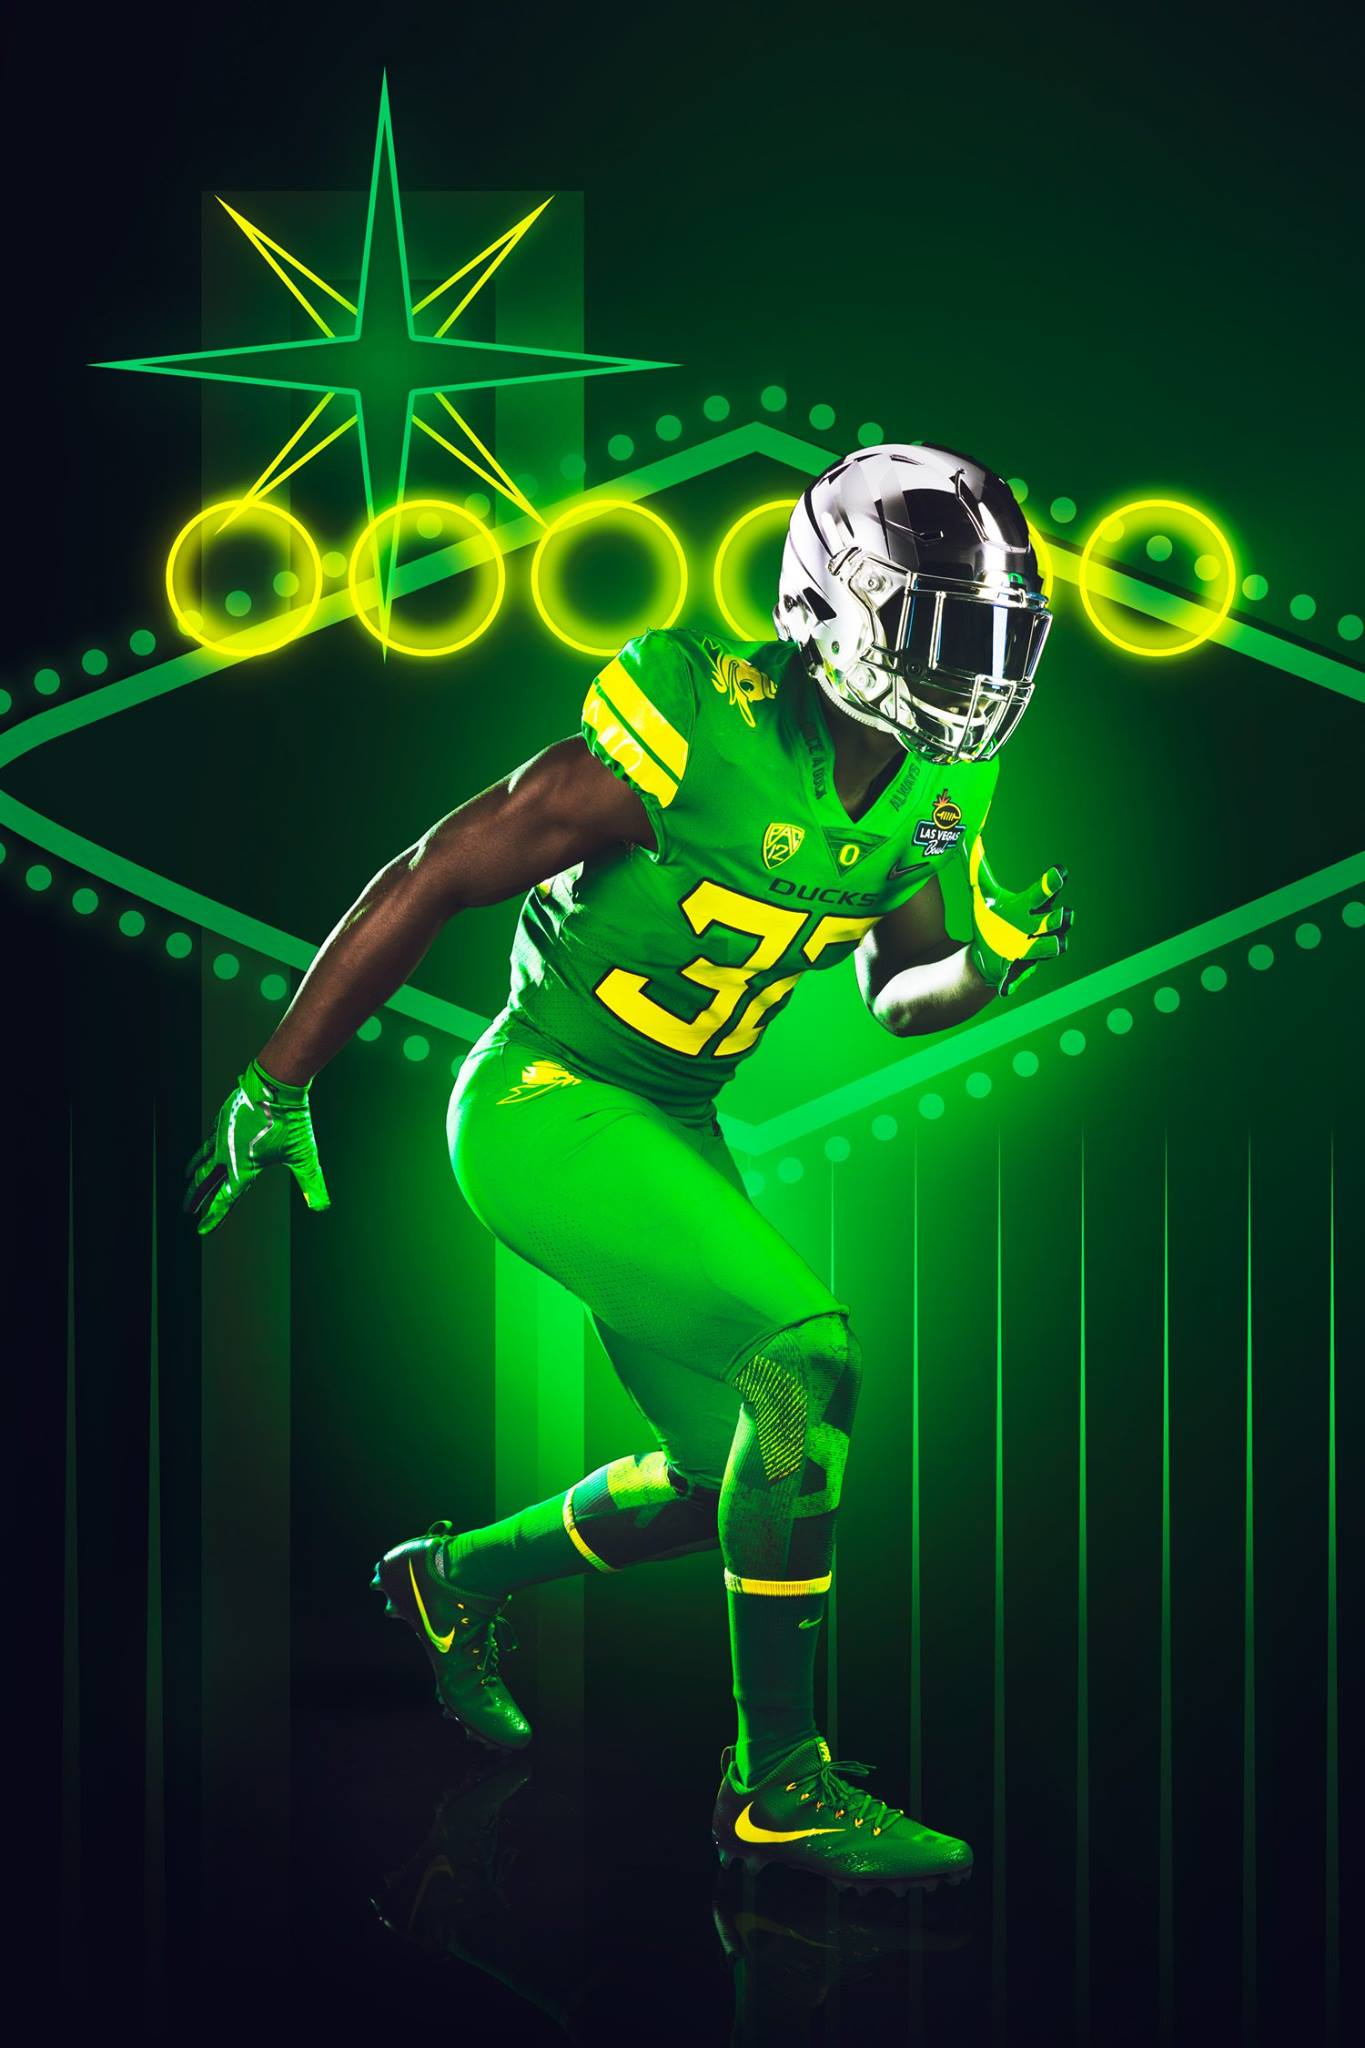 The University of Oregon unveiled uniforms Thursday for the Las Vegas Bowl this Saturday against Boise State. (via GoDucks Facebook)